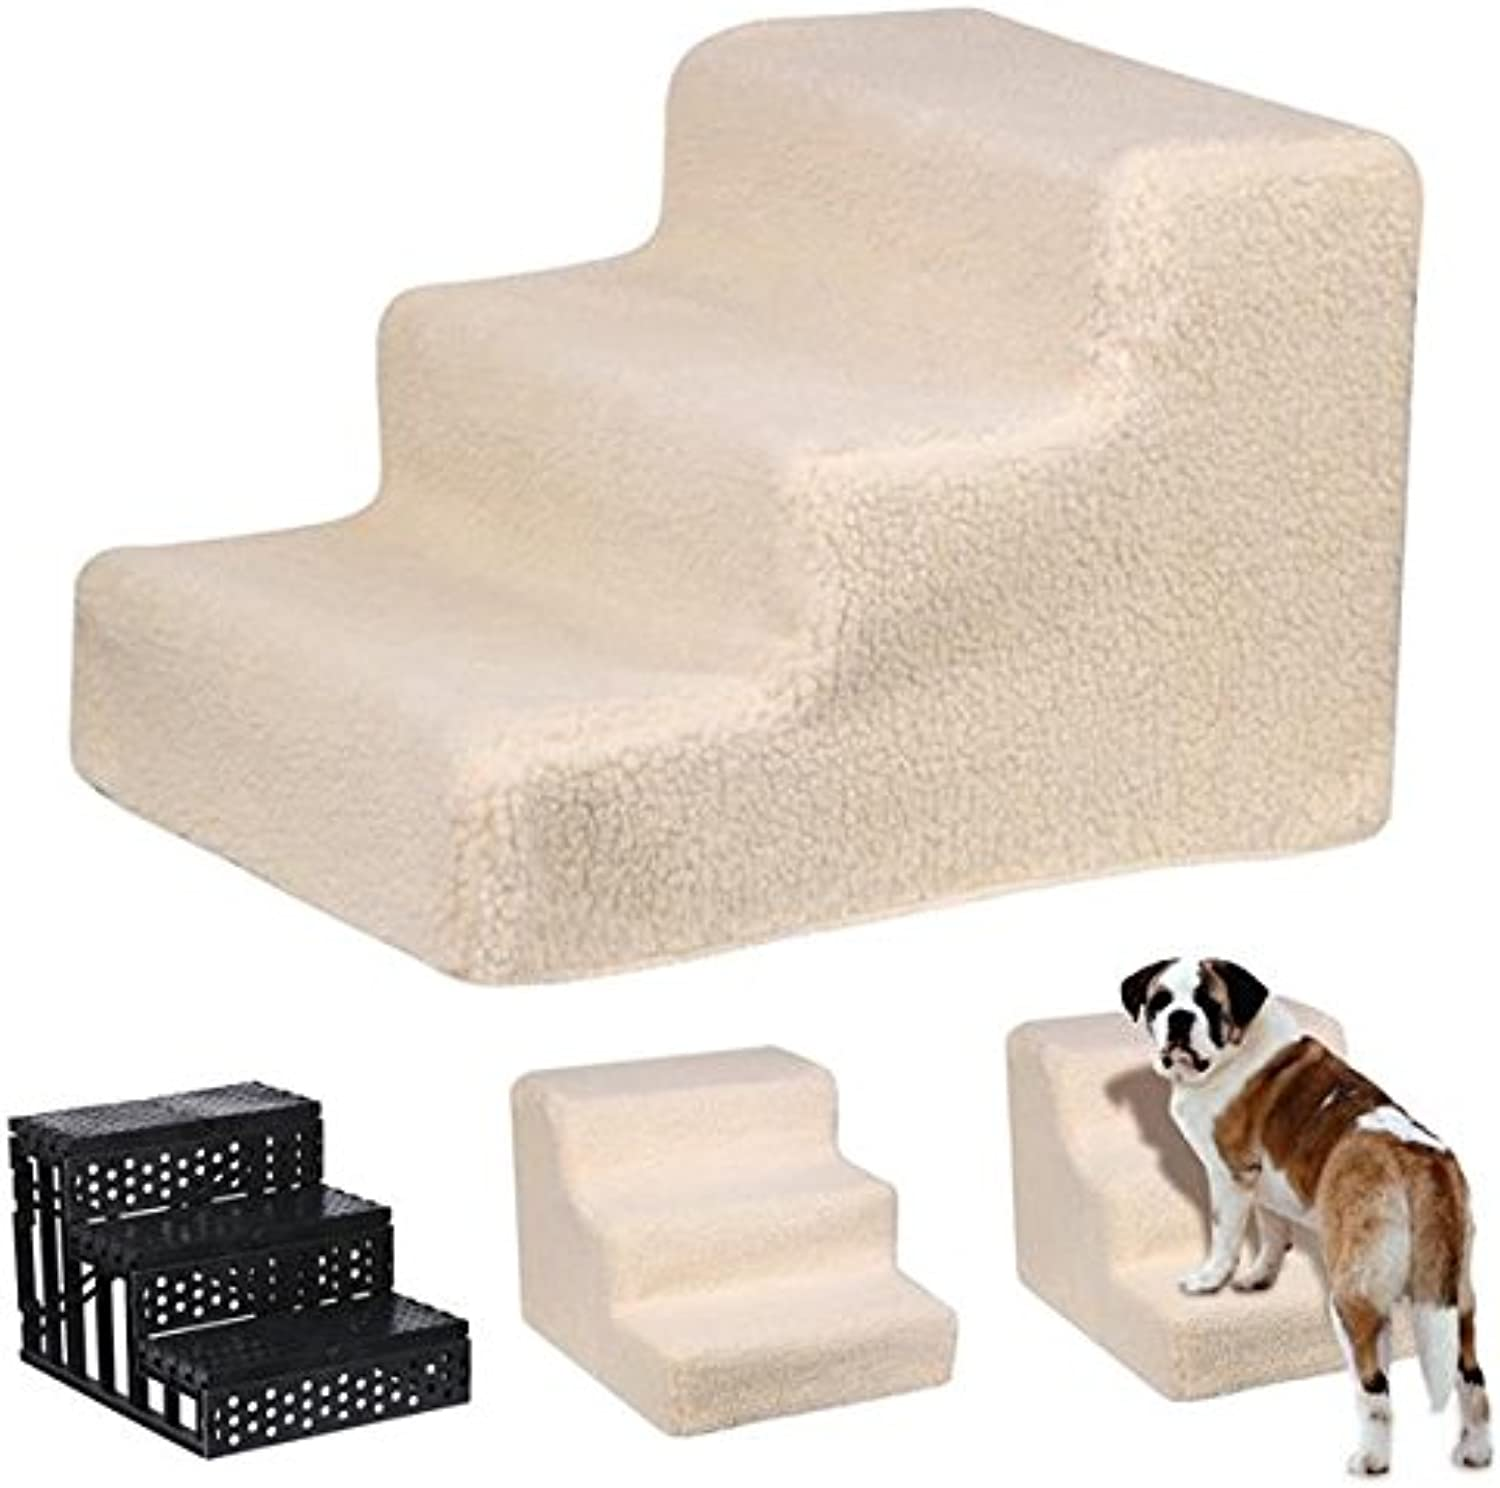 Beyondfashion Pet Cat Dog Little Older Doggy 3 Steps Stairs with Soft Plush Washable Cover